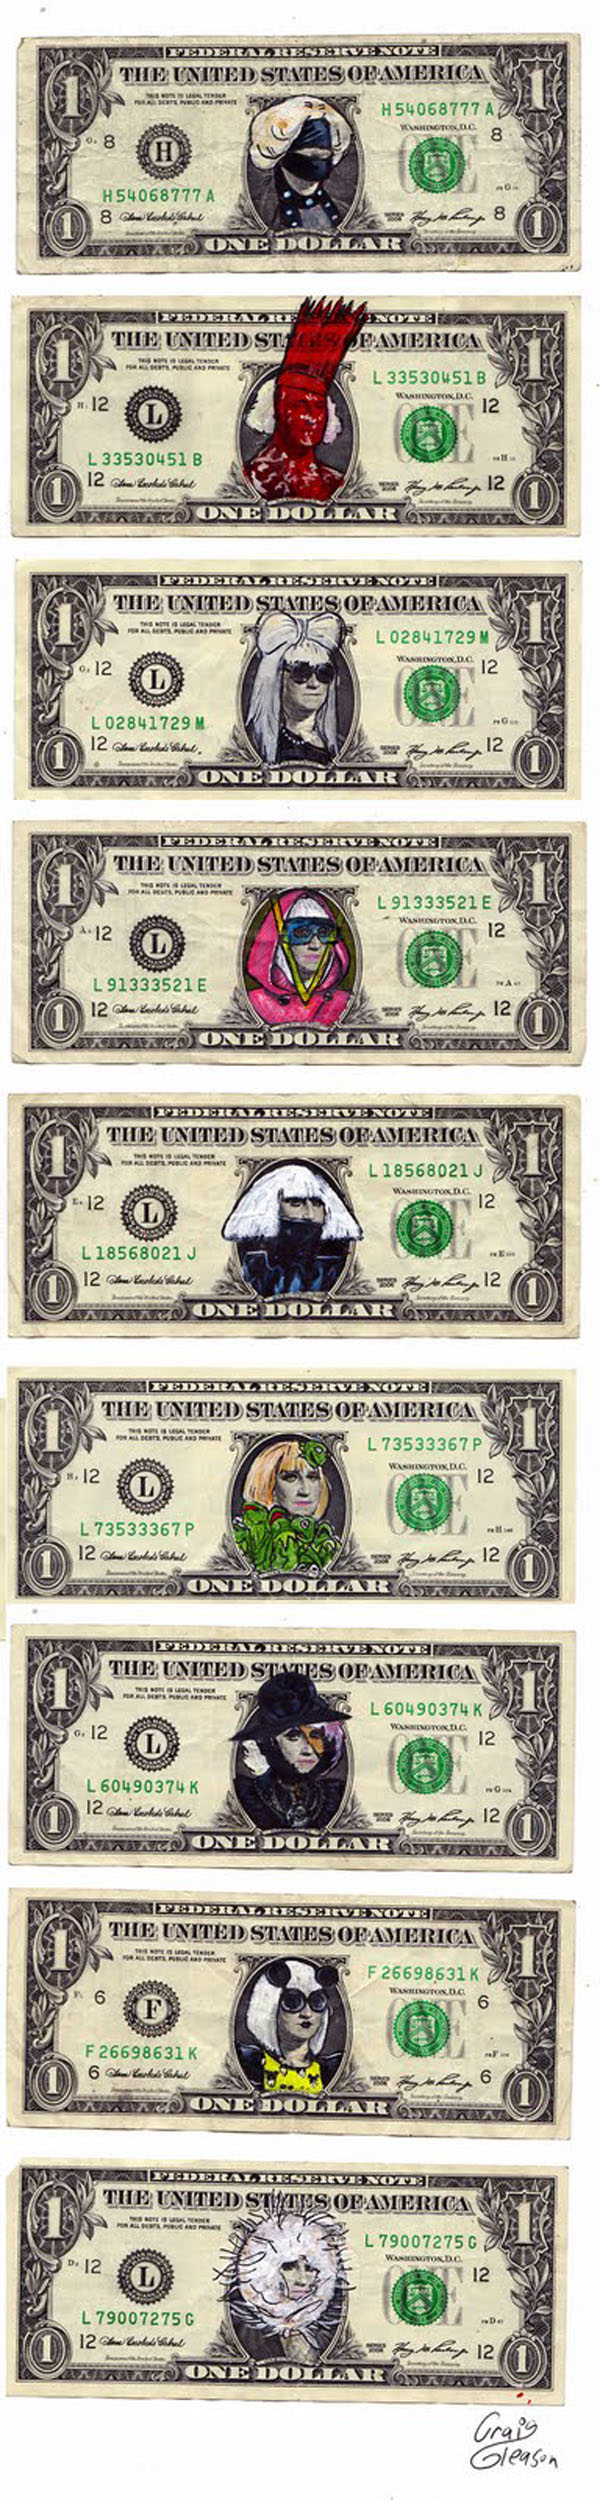 lady-gaga-dollar_all.jpg